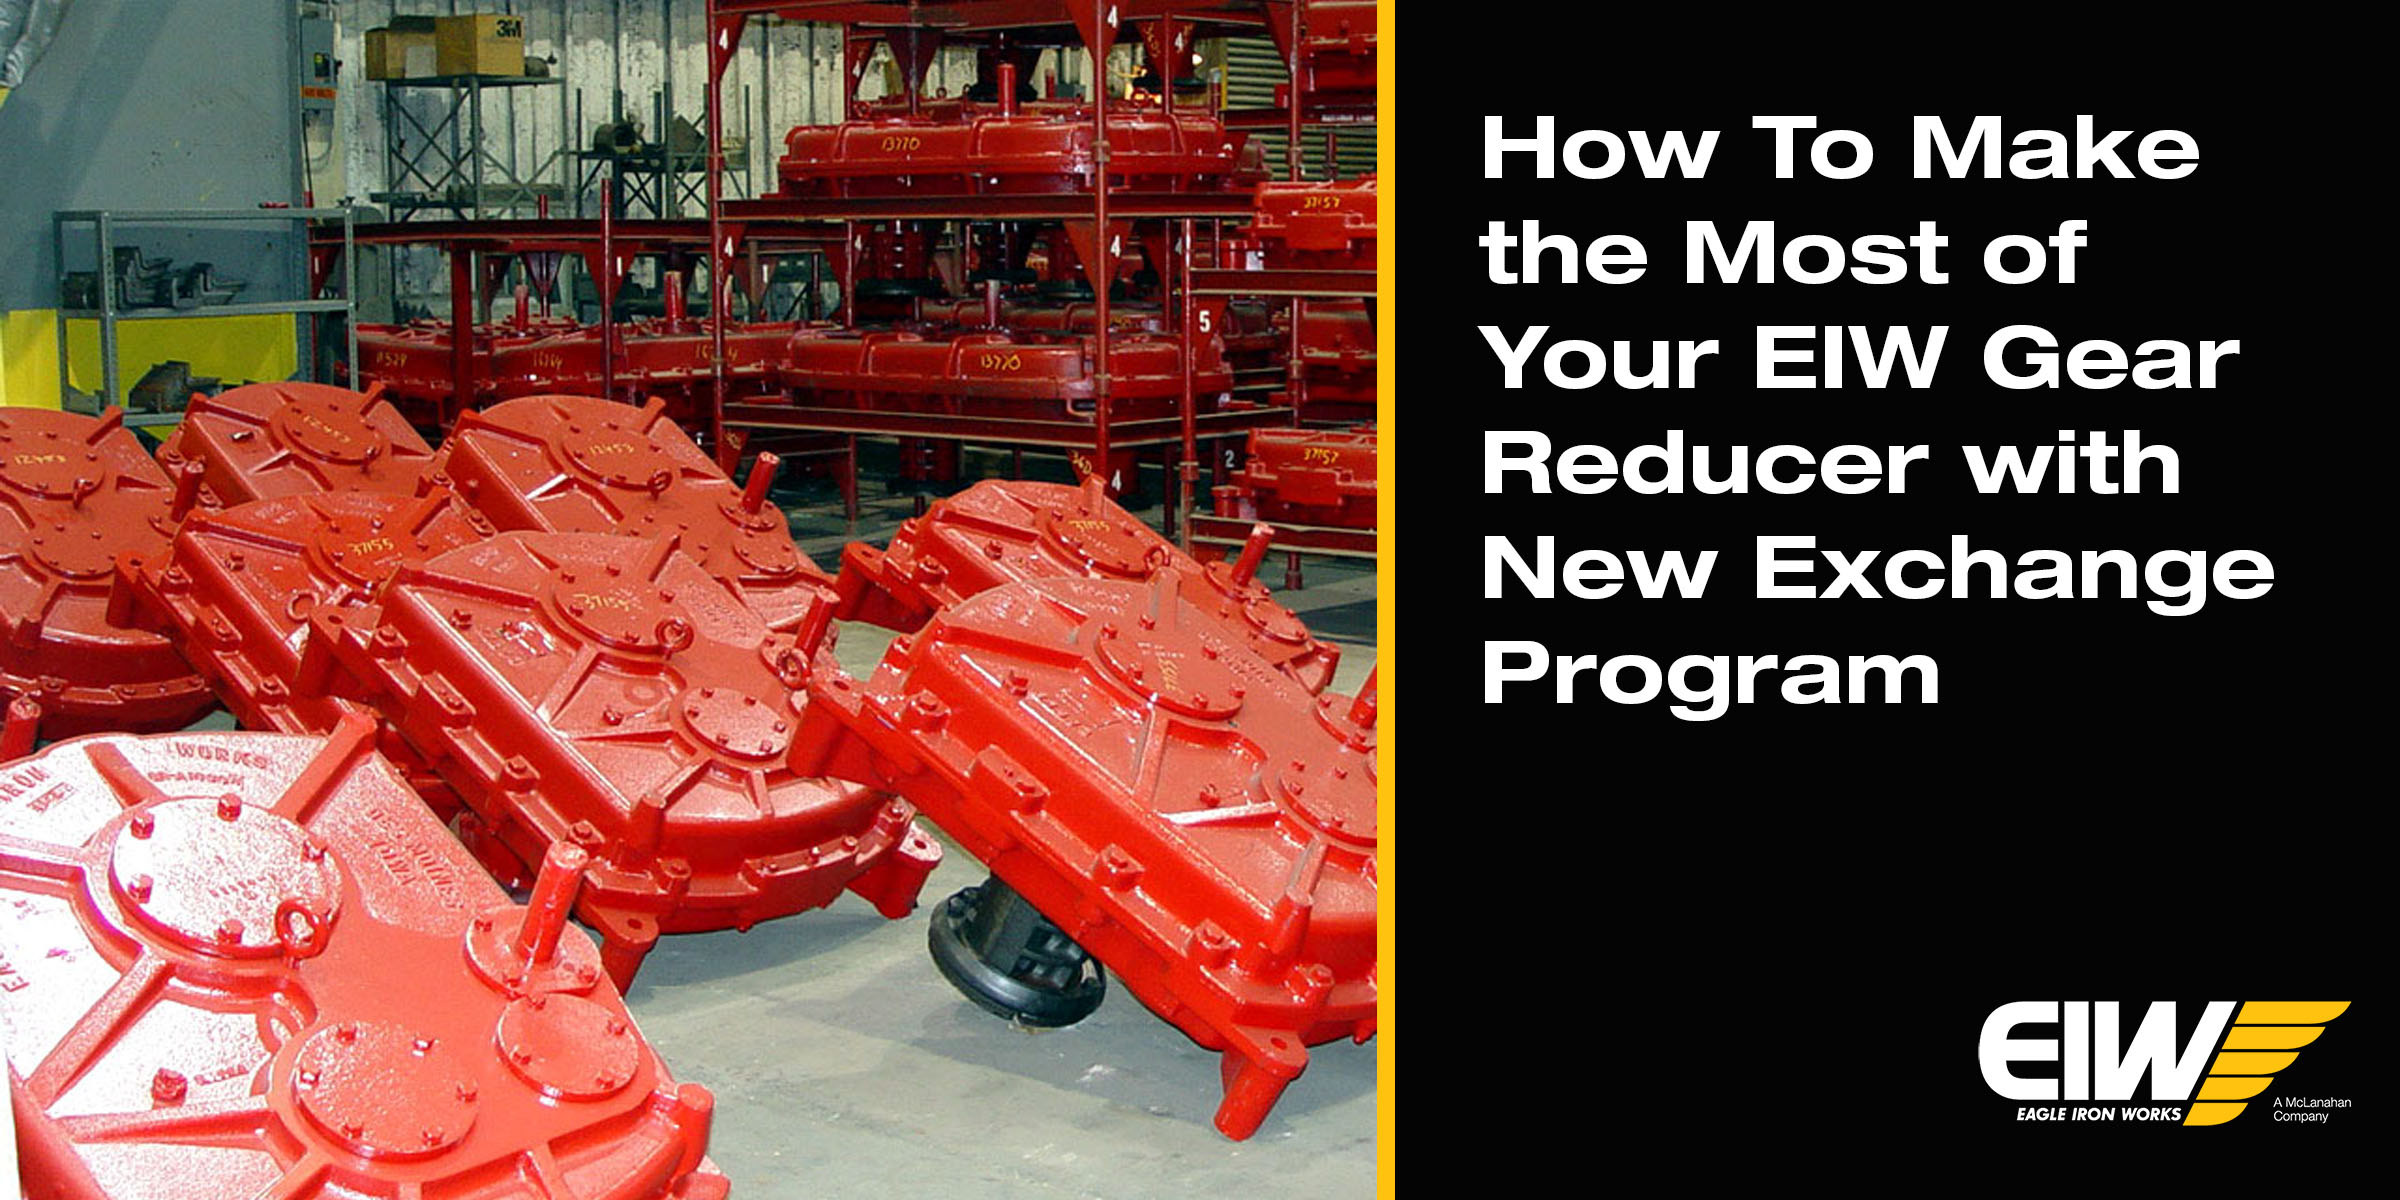 Gear reducers at EIW facility with title text